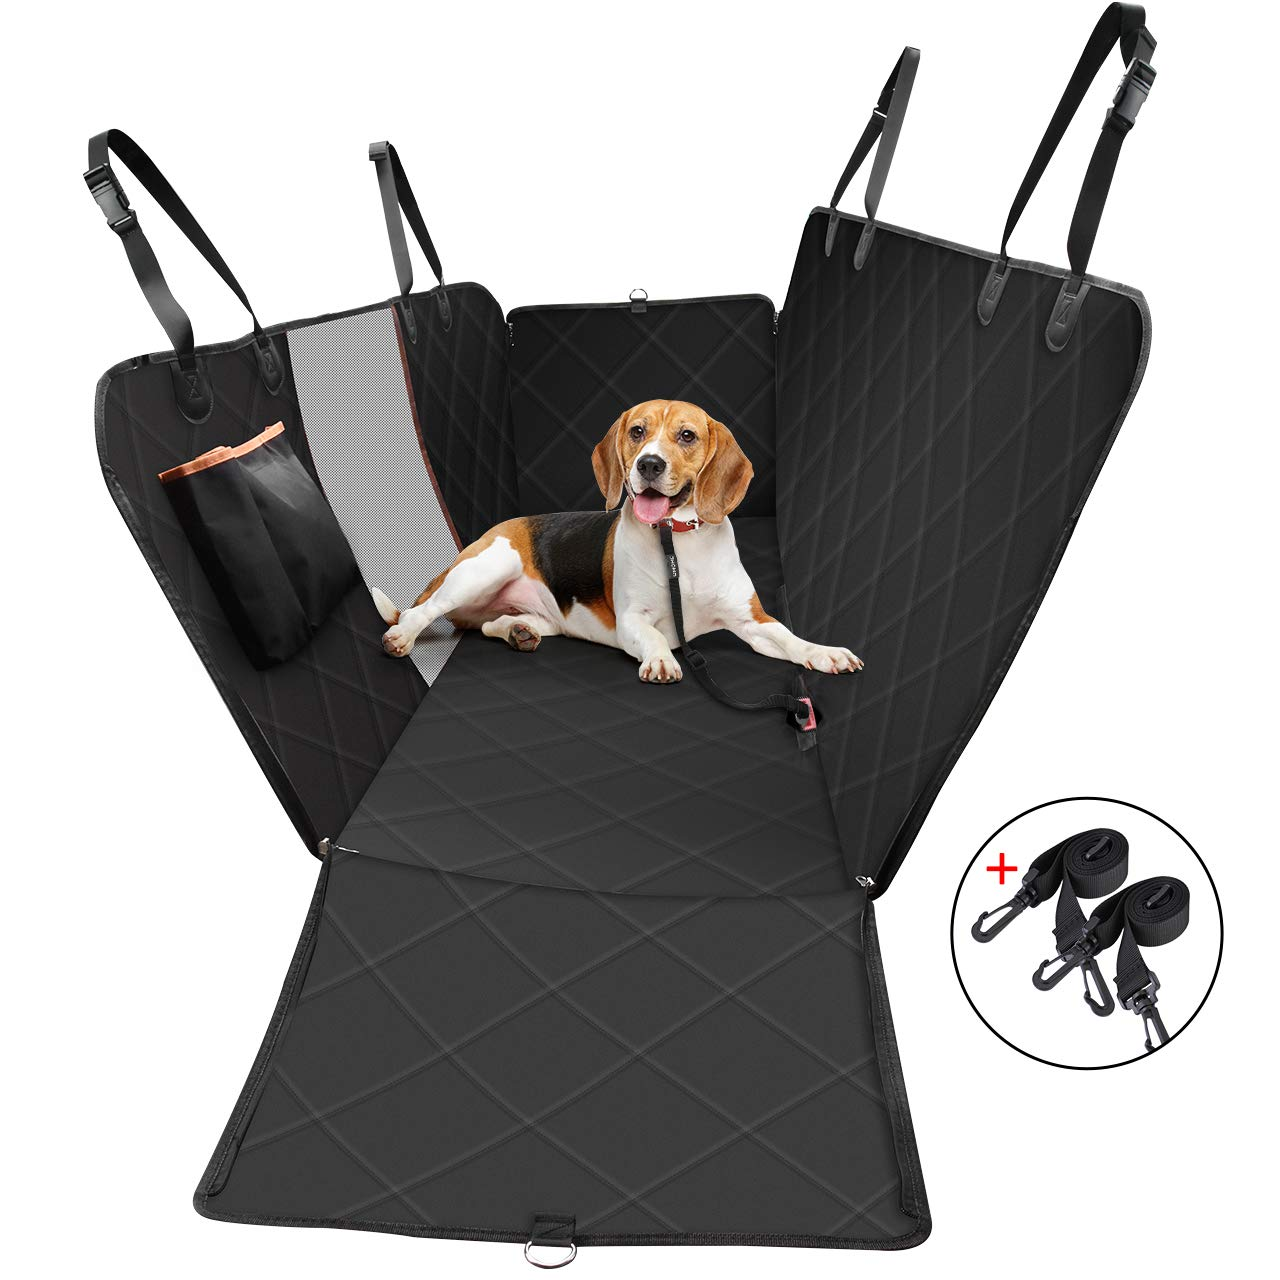 OMORC Dog Car Seat Covers, Special Reinforced Pet Car Seat Cover with Mesh Window & Storage Pocket, Scratch Proof & Waterproof, Easy to Install & Clean, Hammock with Side Flaps of Car/Truck/SUV